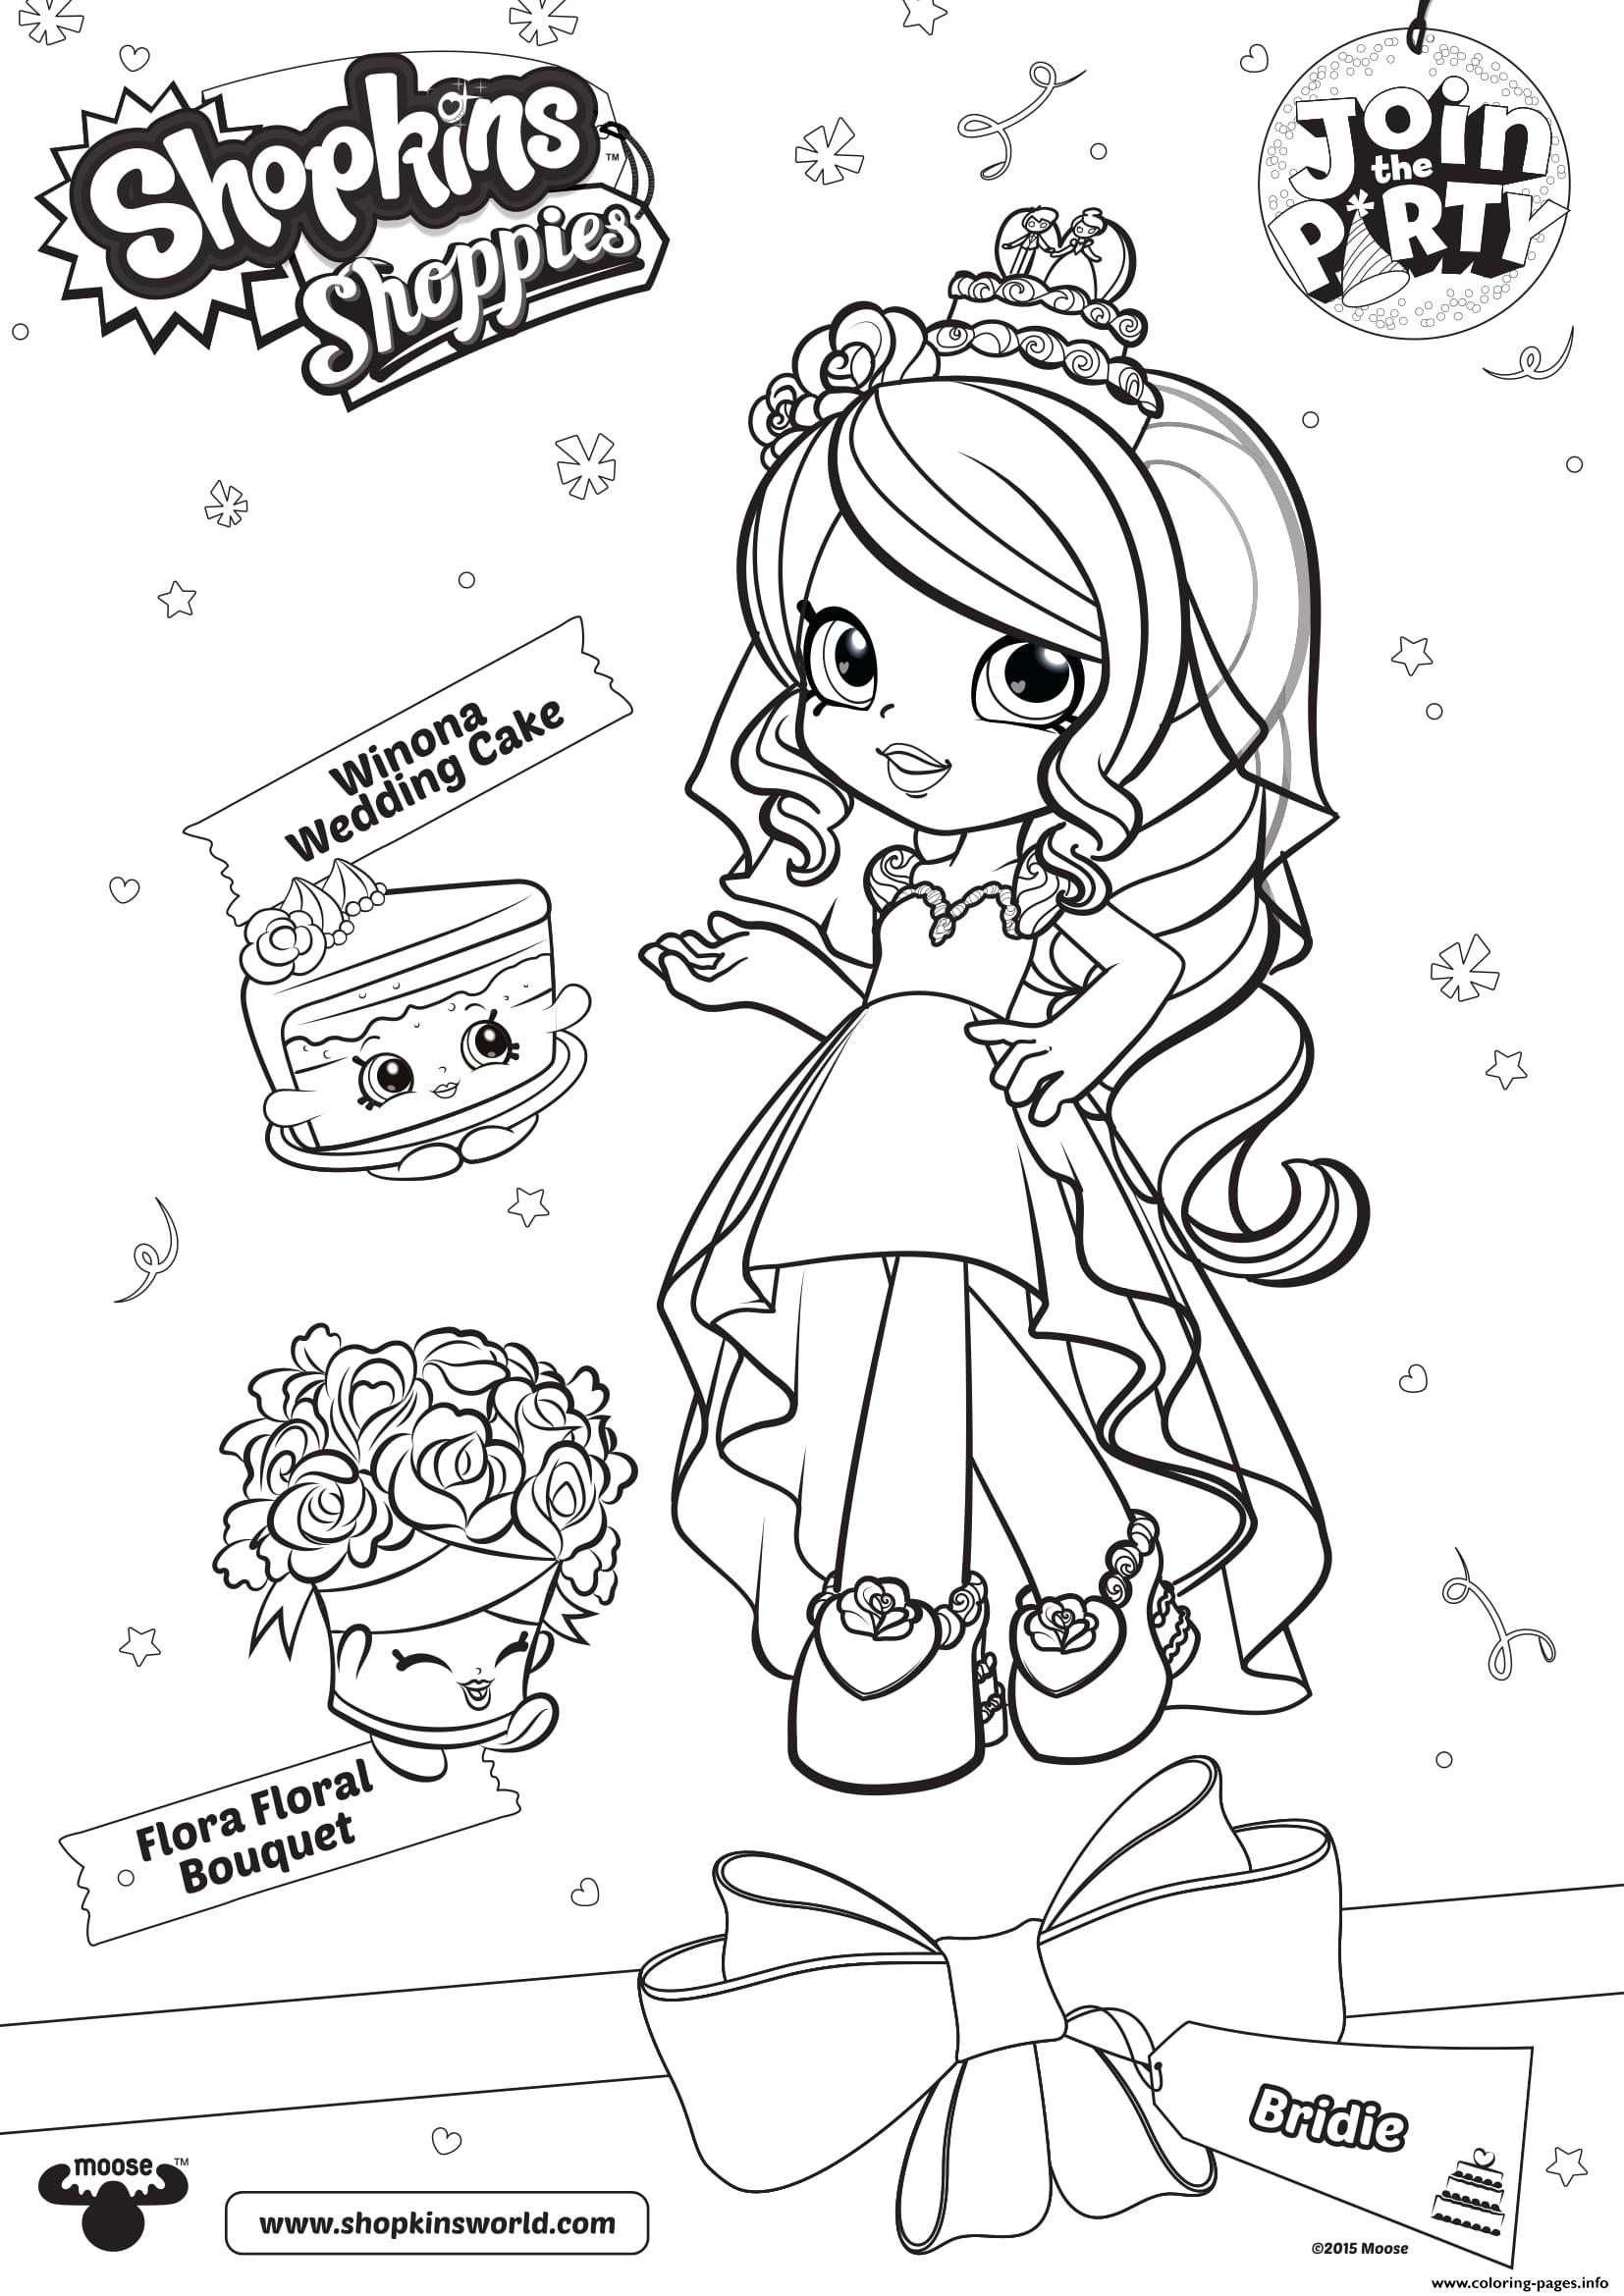 Shopkins Shoppies Join The Party Winona Wedding Cake Flora Floral Bouquet Coloring Pages Printable